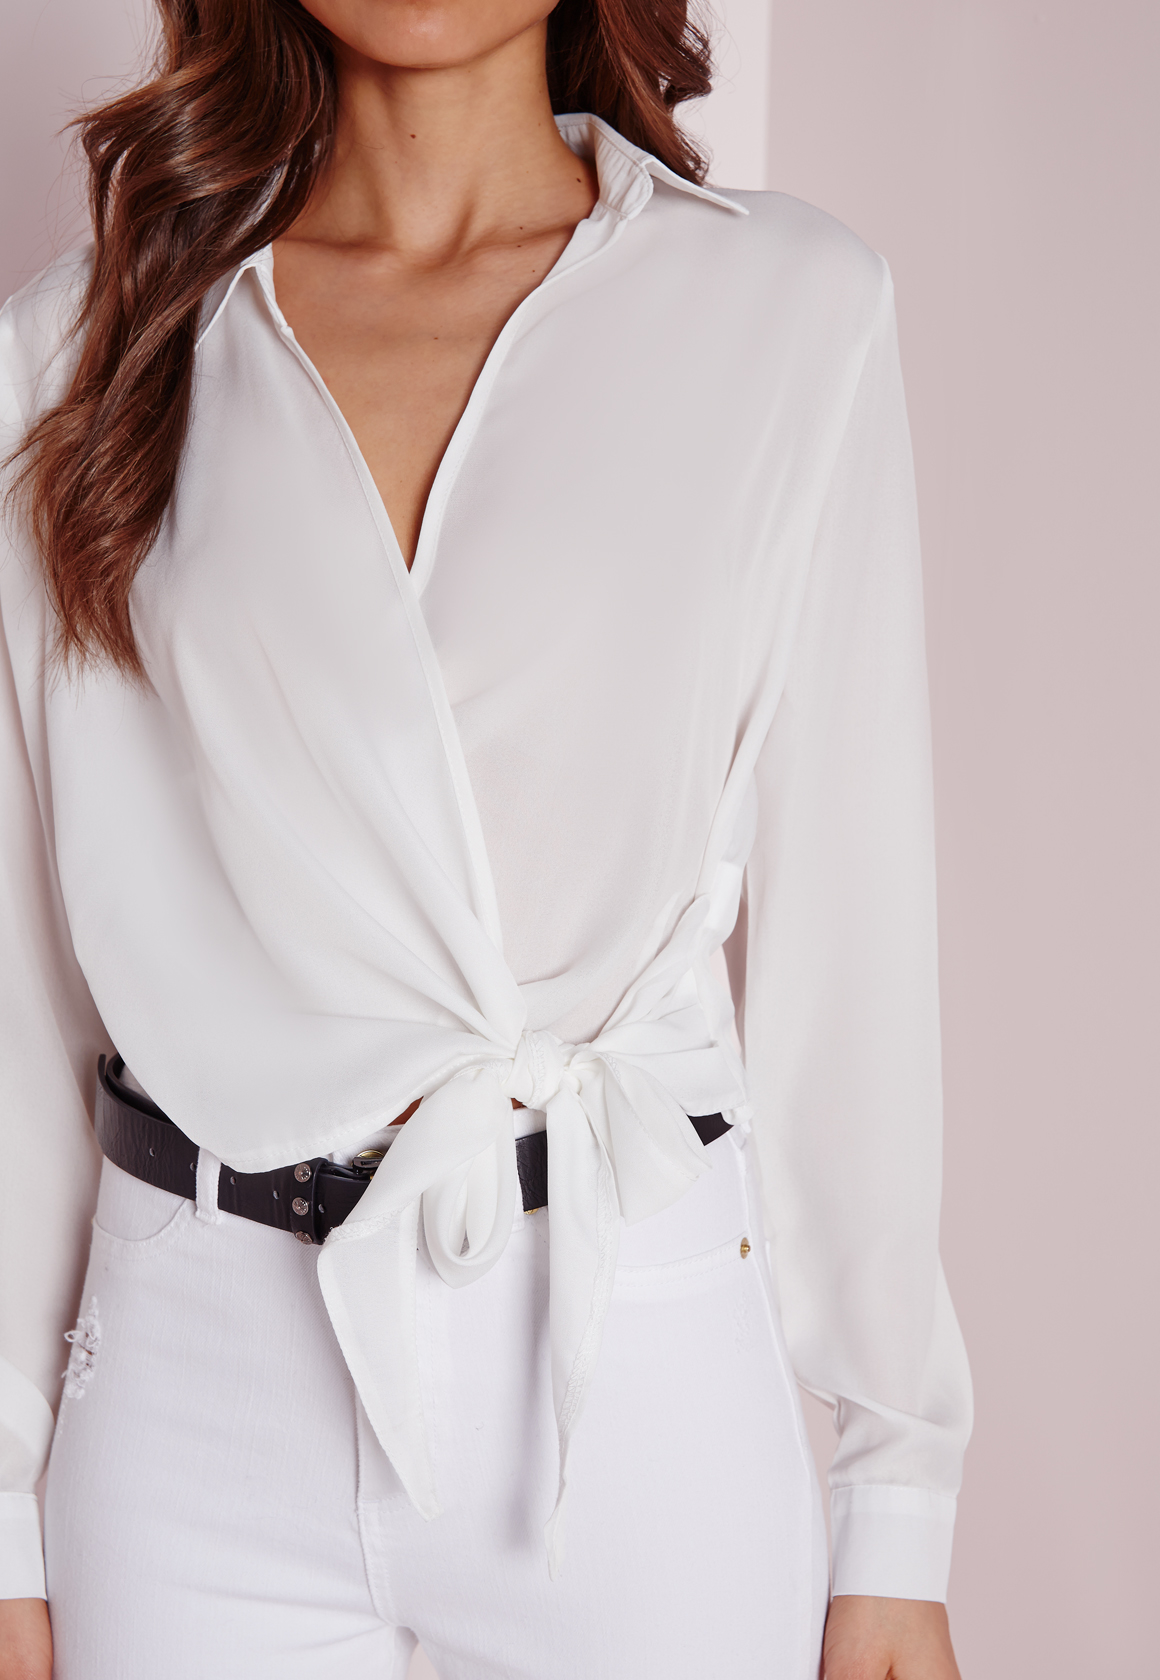 Vince White Blouse